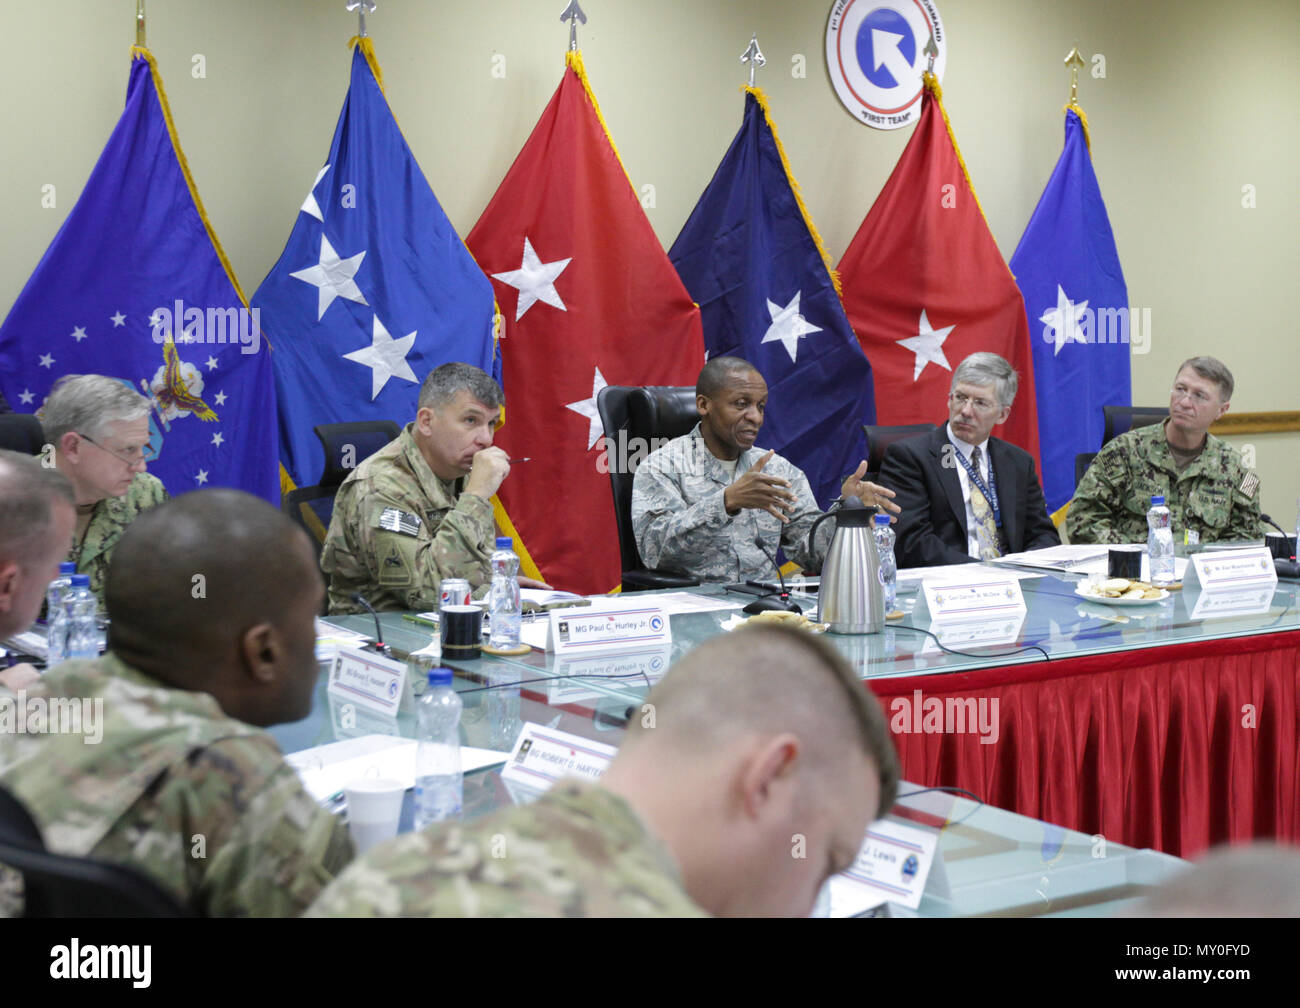 Gen. Darren W. McDew, commanding general of U.S. Transportation Command, speaks with key leaders of joint logistics commands about transportation and distribution of materials challenges in the U.S. Central Command (CENTCOM) area of responsibility at Camp Arifjan, Kuwait, Dec. 13, 2016. The realignment of joint forces has sped up the process of troops receiving vital supplies in the CENTCOM area of responsibility. (U.S. Army Photo by Staff Sgt. Dalton Smith) - Stock Image